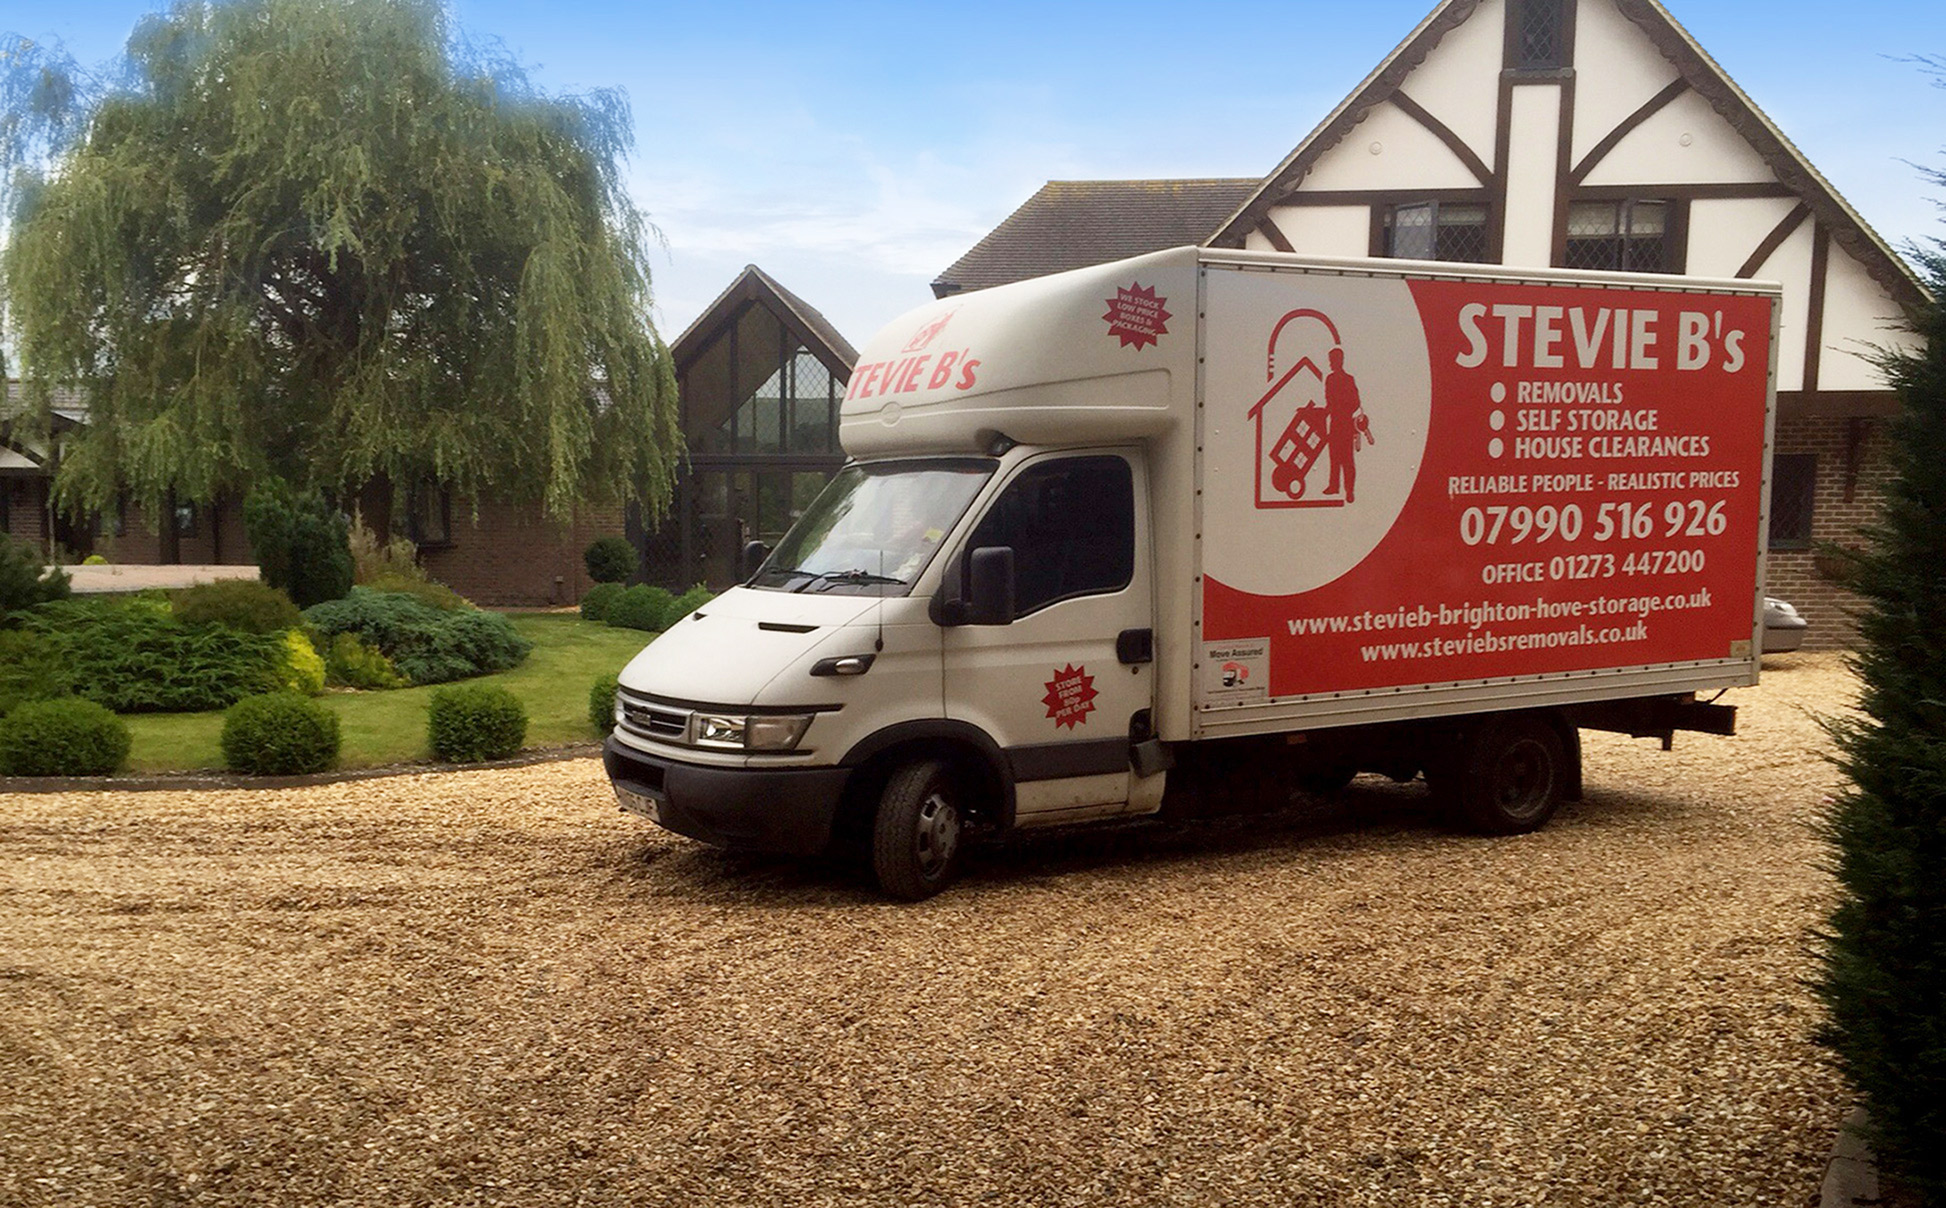 stevie b's brighton removals van ouside brighton country estate house